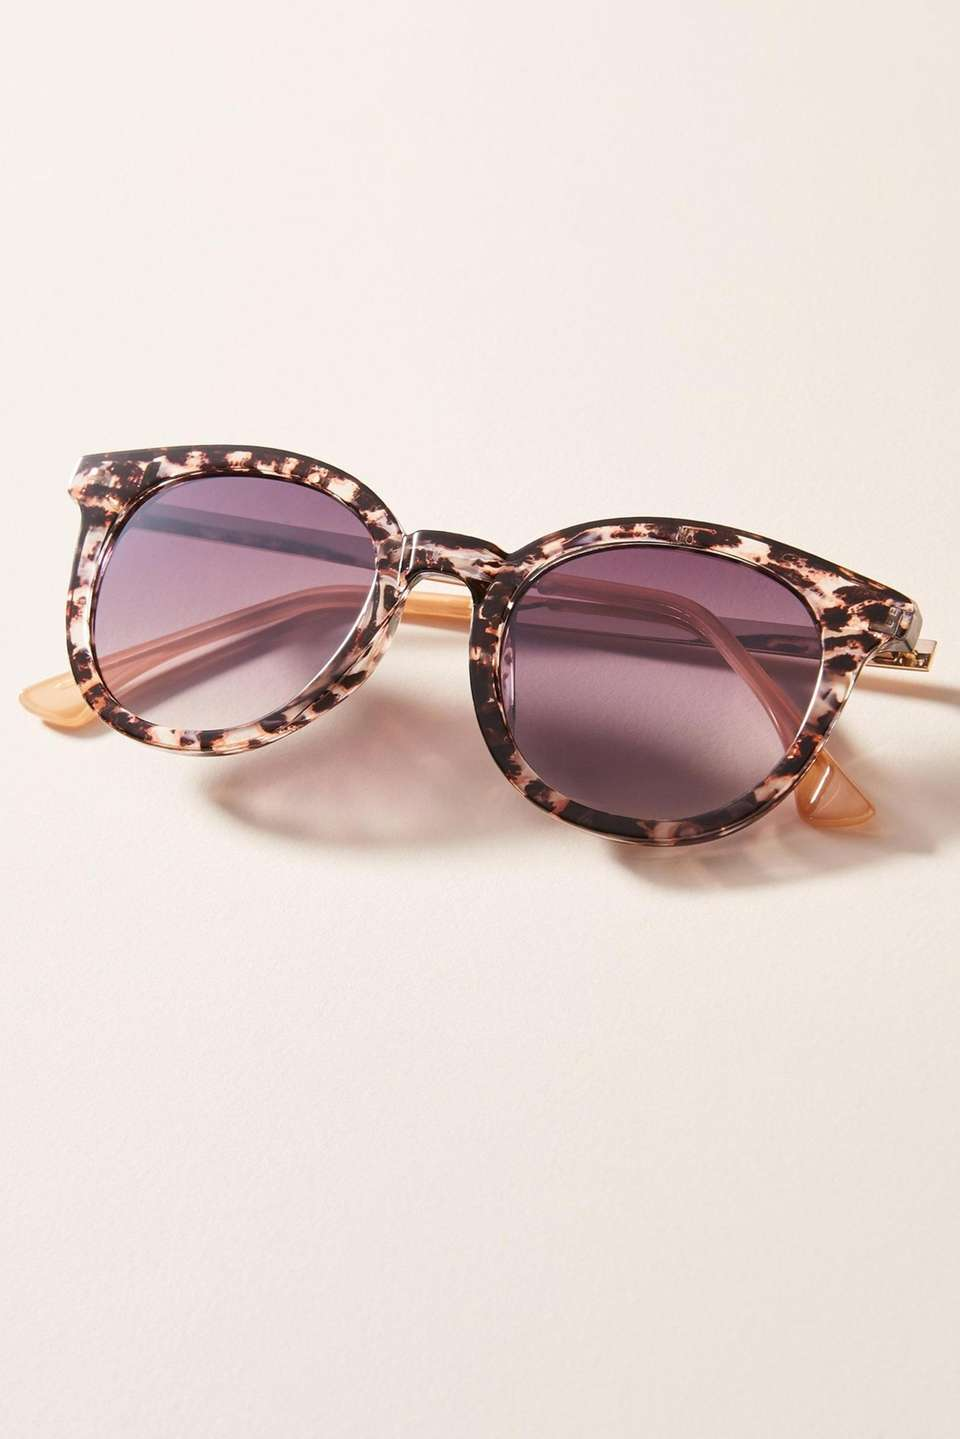 These '60s-inspired shades will have you feeling like